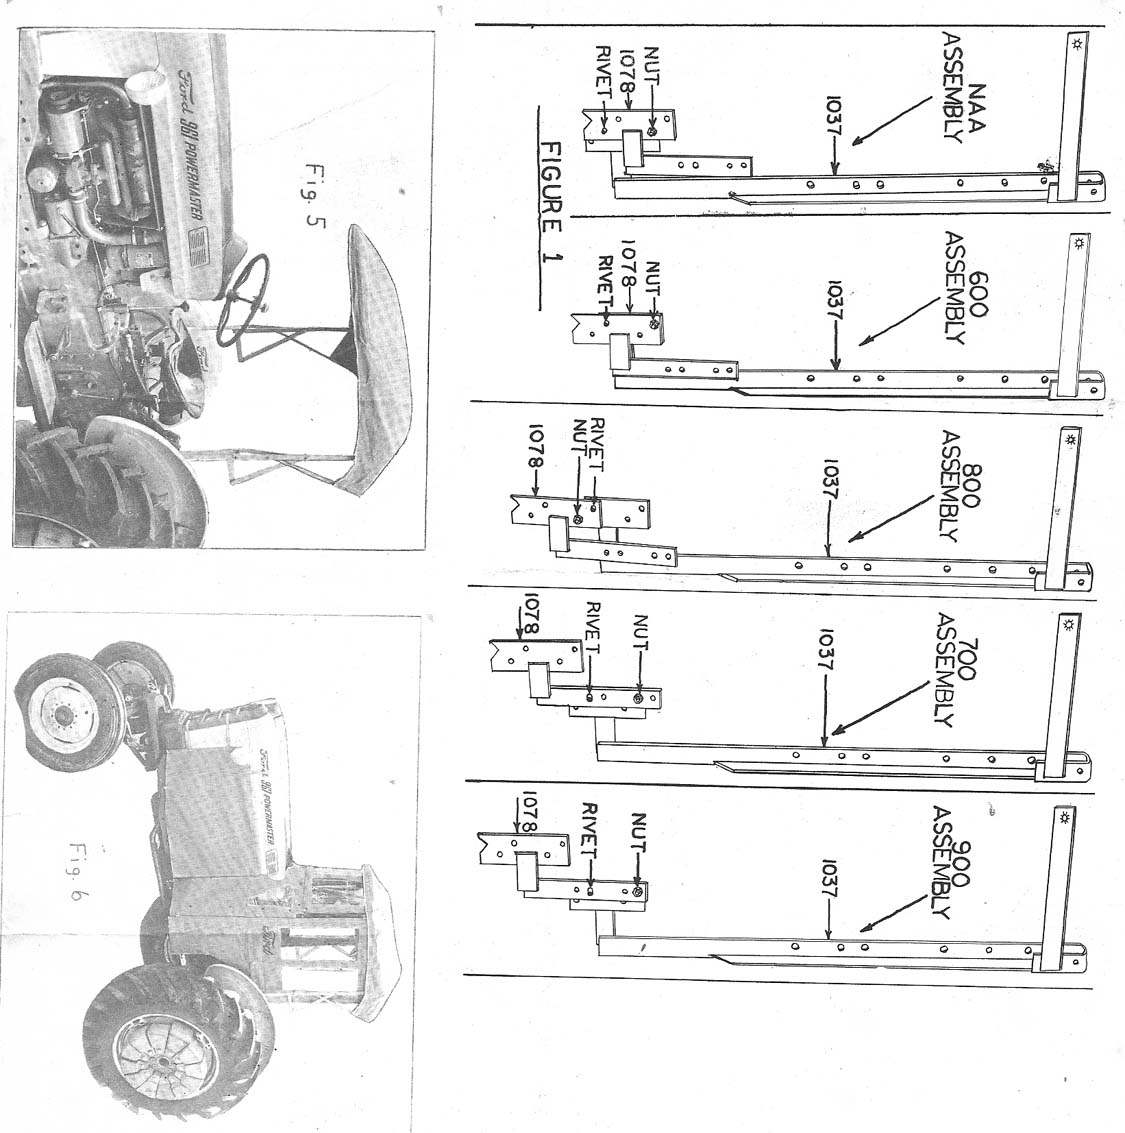 Ford Transmission Parts Diagram Ford Auto Wiring